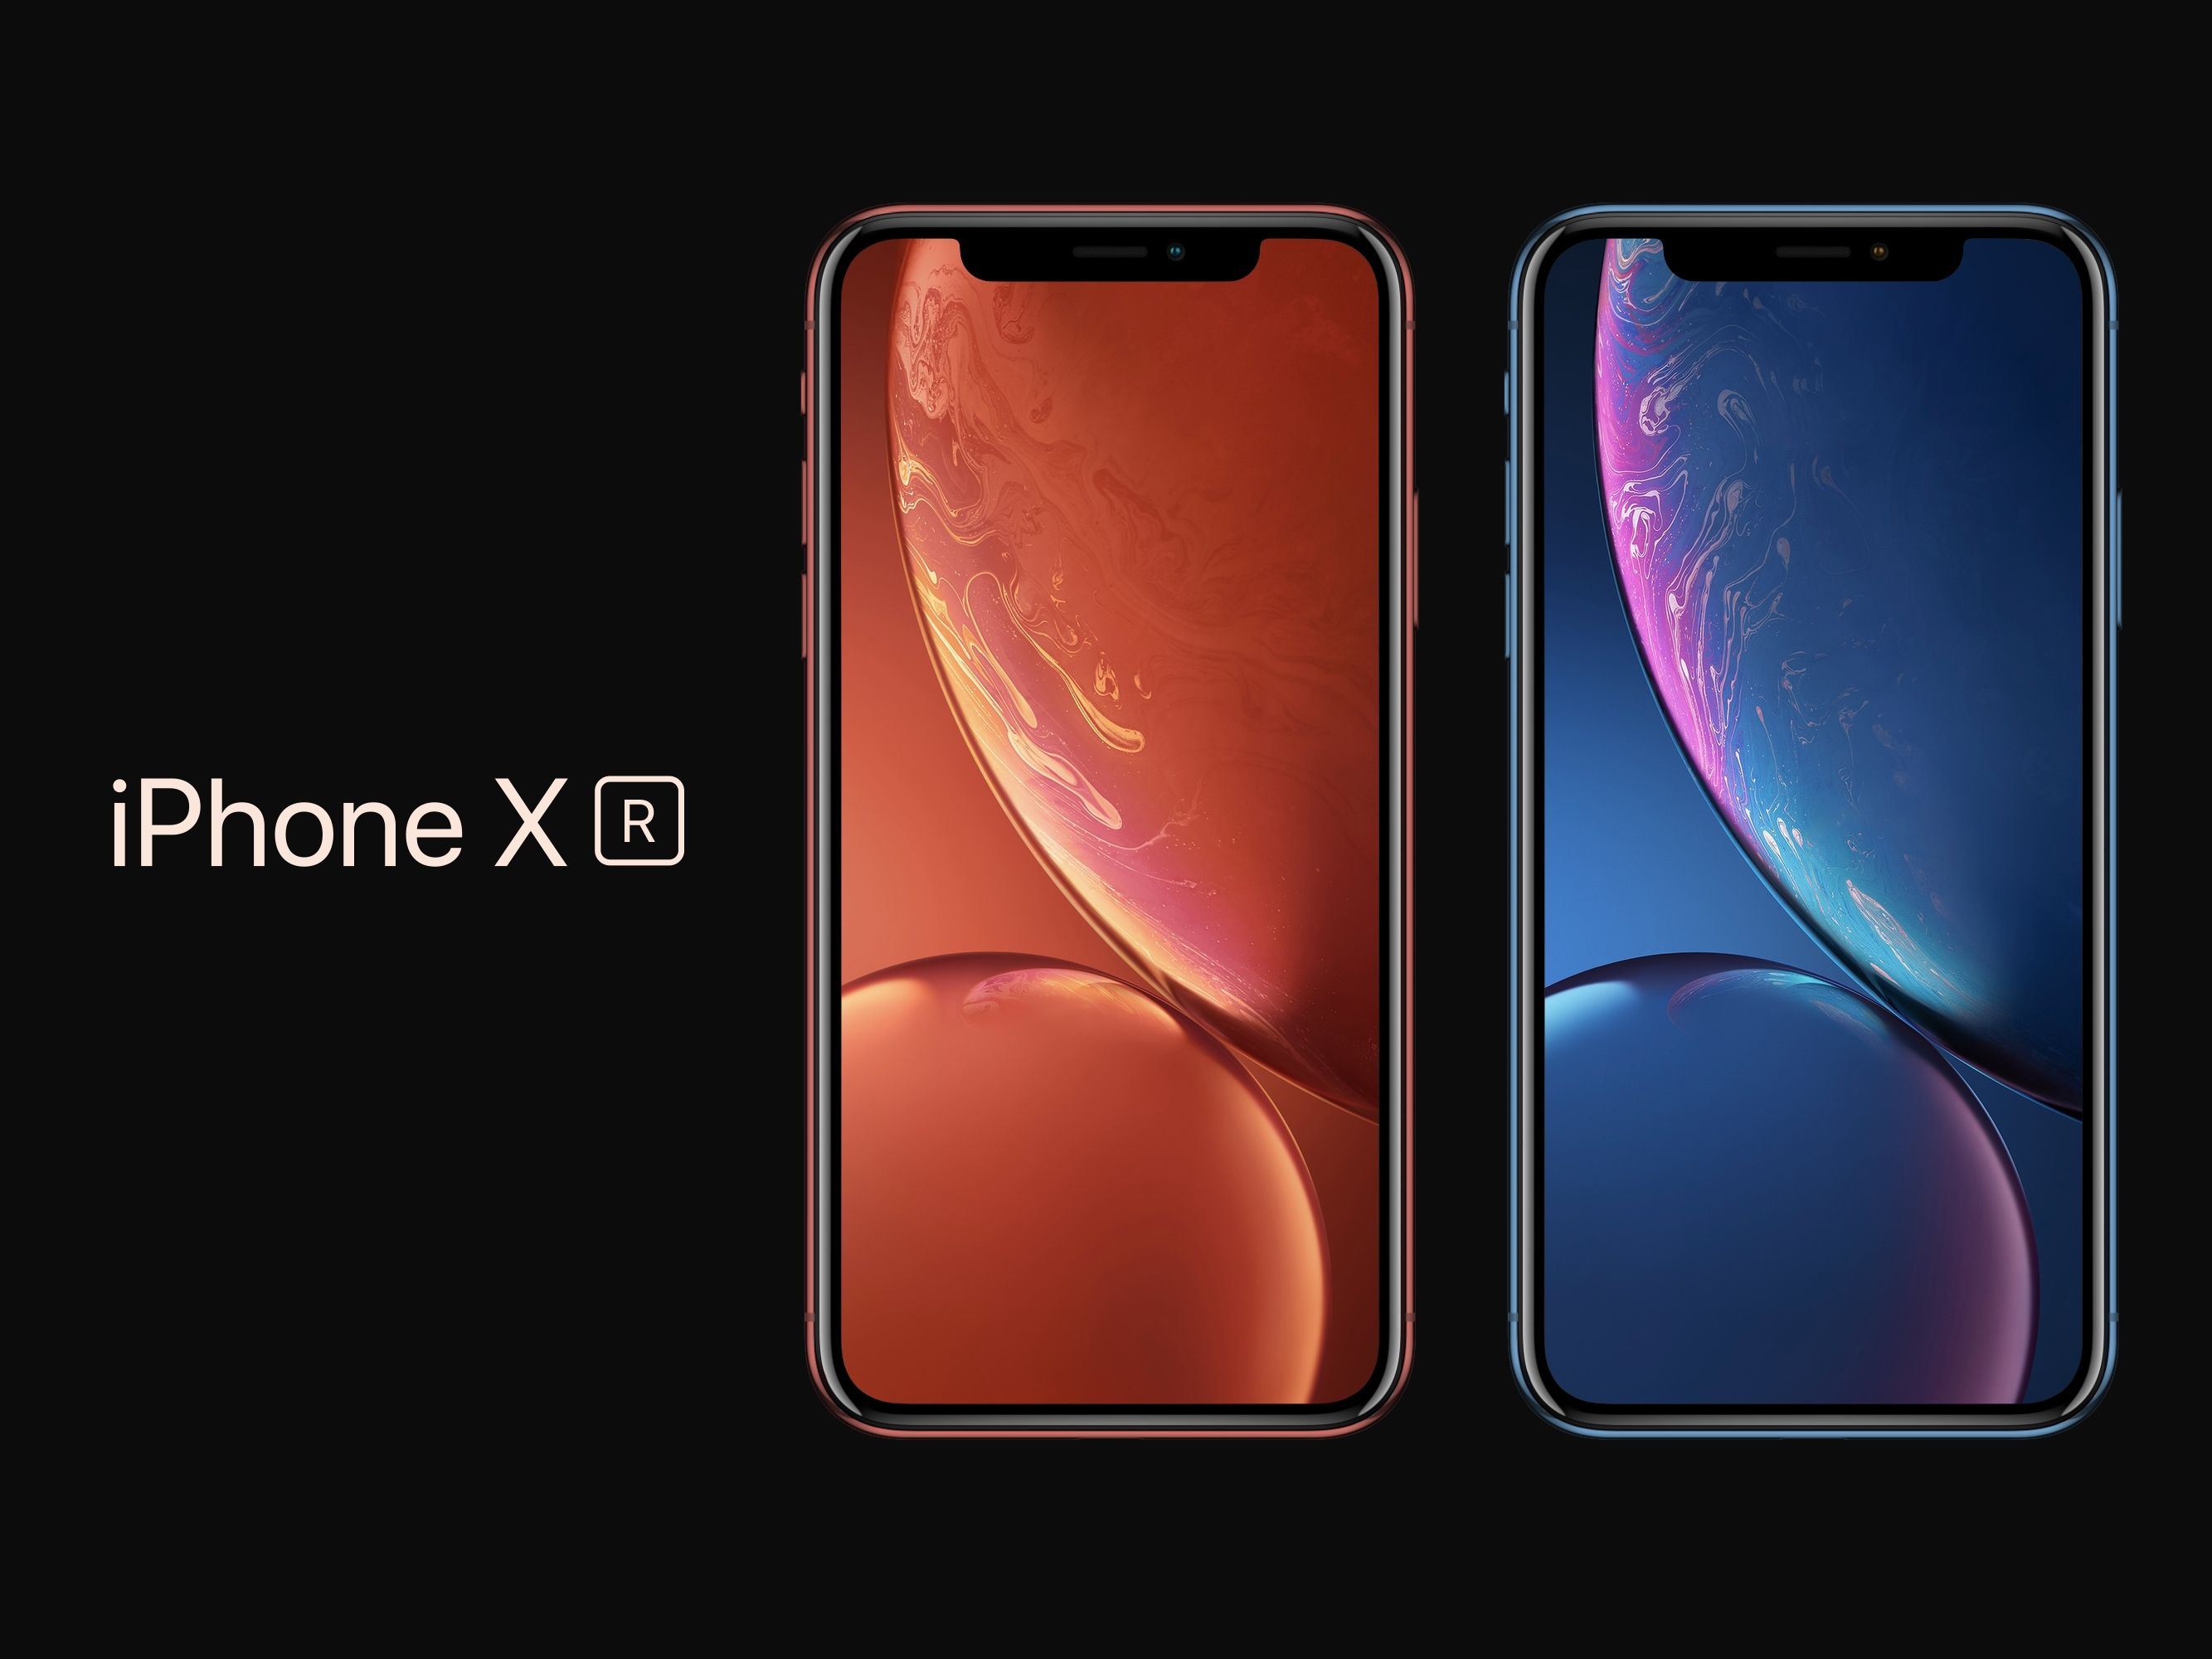 Top 10 Reasons to Buy Apple iPhone XR